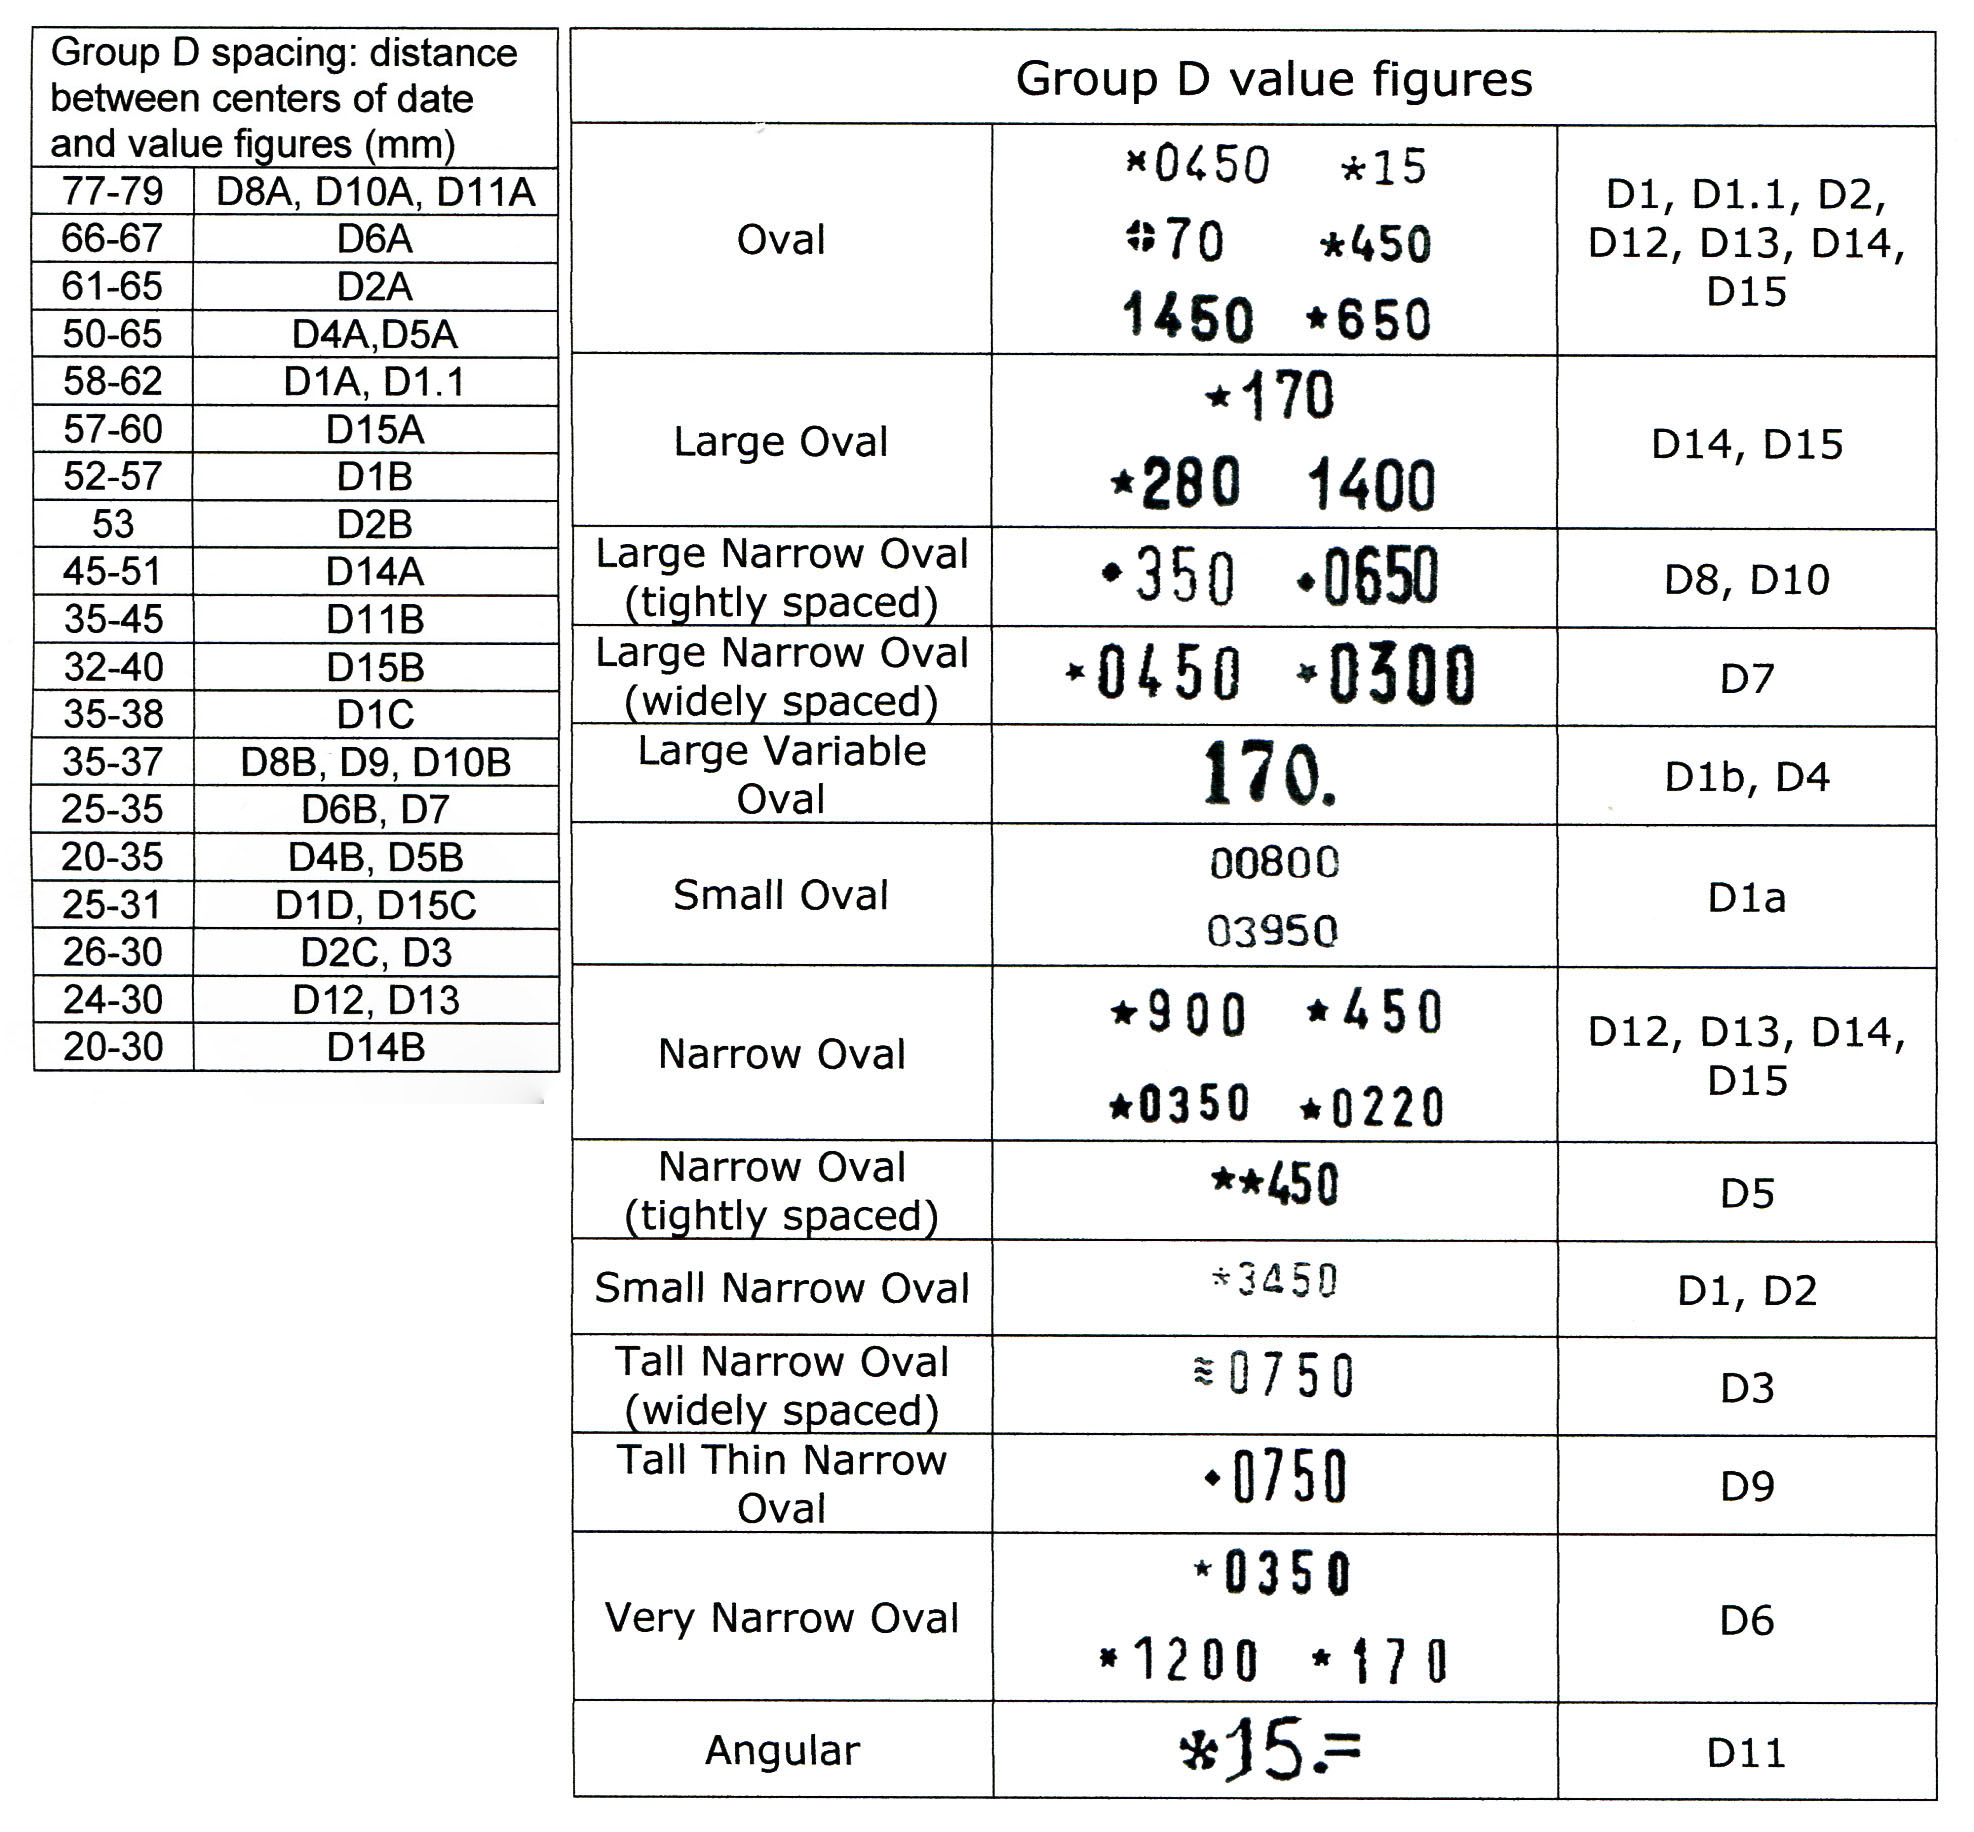 Time Clock Conversion Chart: Italy stamp group D spacing and value figure chart.jpg ,Chart